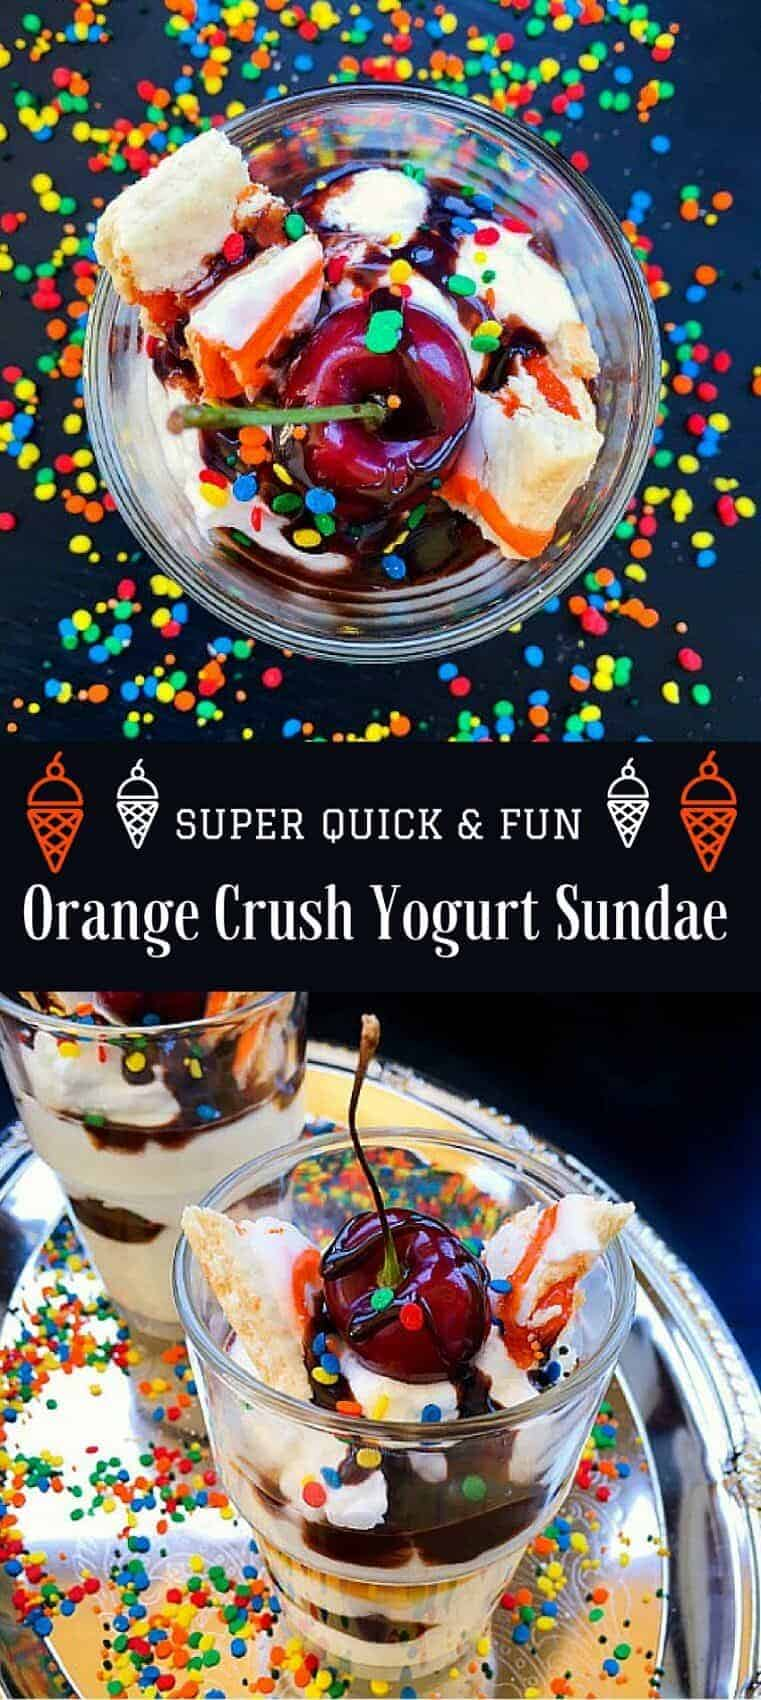 Super Quick & Fun Orange Crush Yogurt Sundae : #ad #ReimagineCereal #CollectiveBias #yogurt #sundae